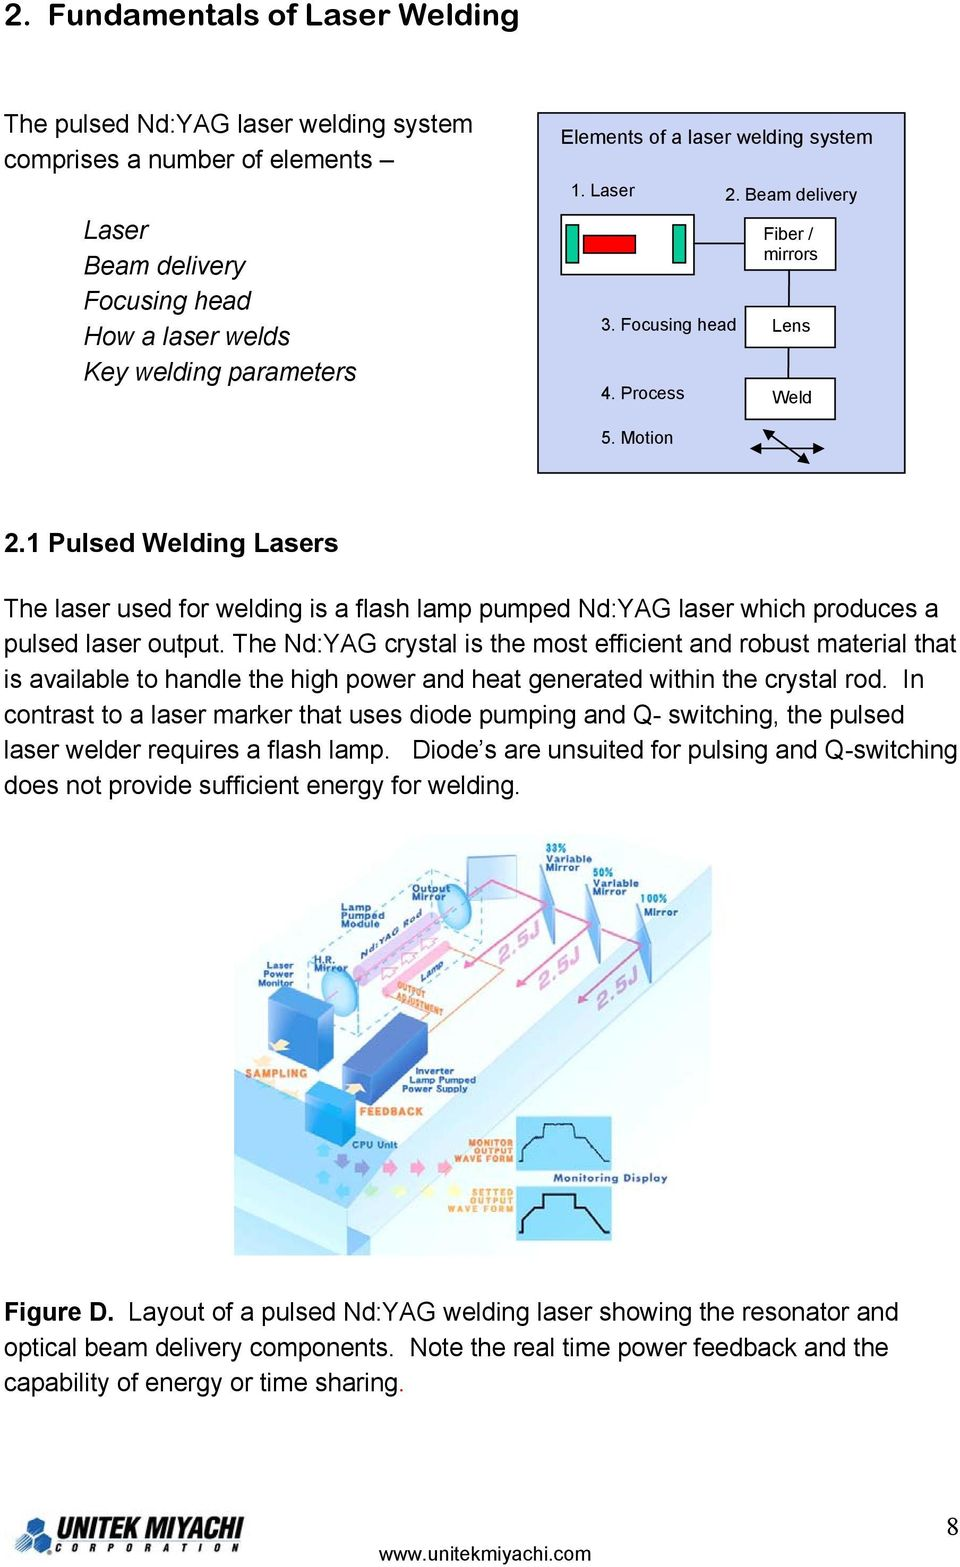 Unitek Miyachi Corporation Ndyag Laser Welding Guide Pdf Diagram 1 Pulsed Lasers The Used For Is A Flash Lamp Pumped Nd